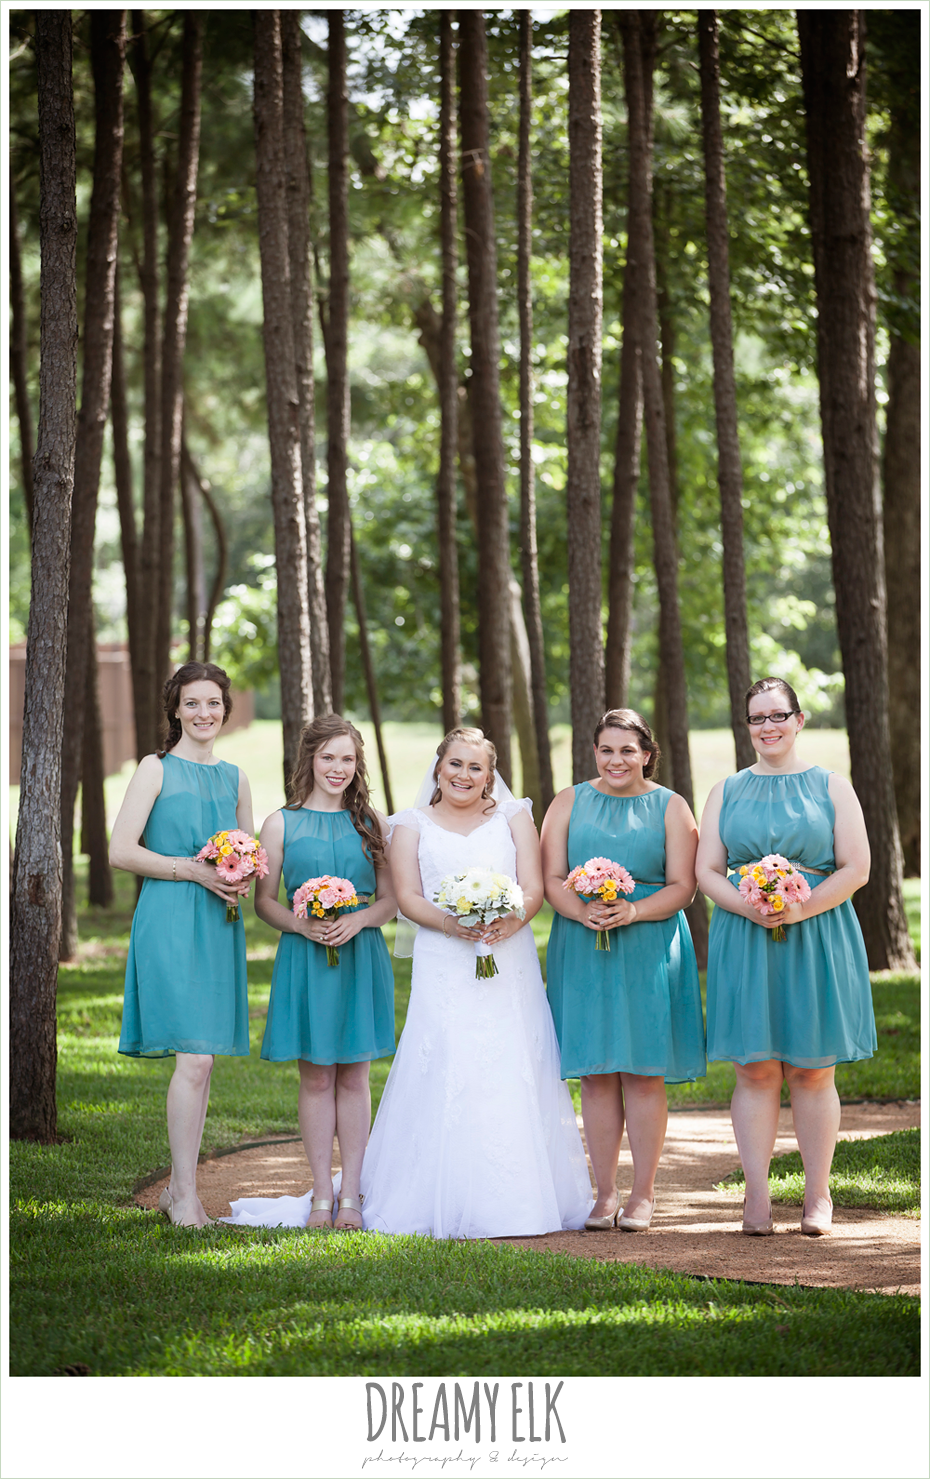 outdoor bridal party, blue bridesmaids dresses, amber springs summer wedding photo {dreamy elk photography and design}